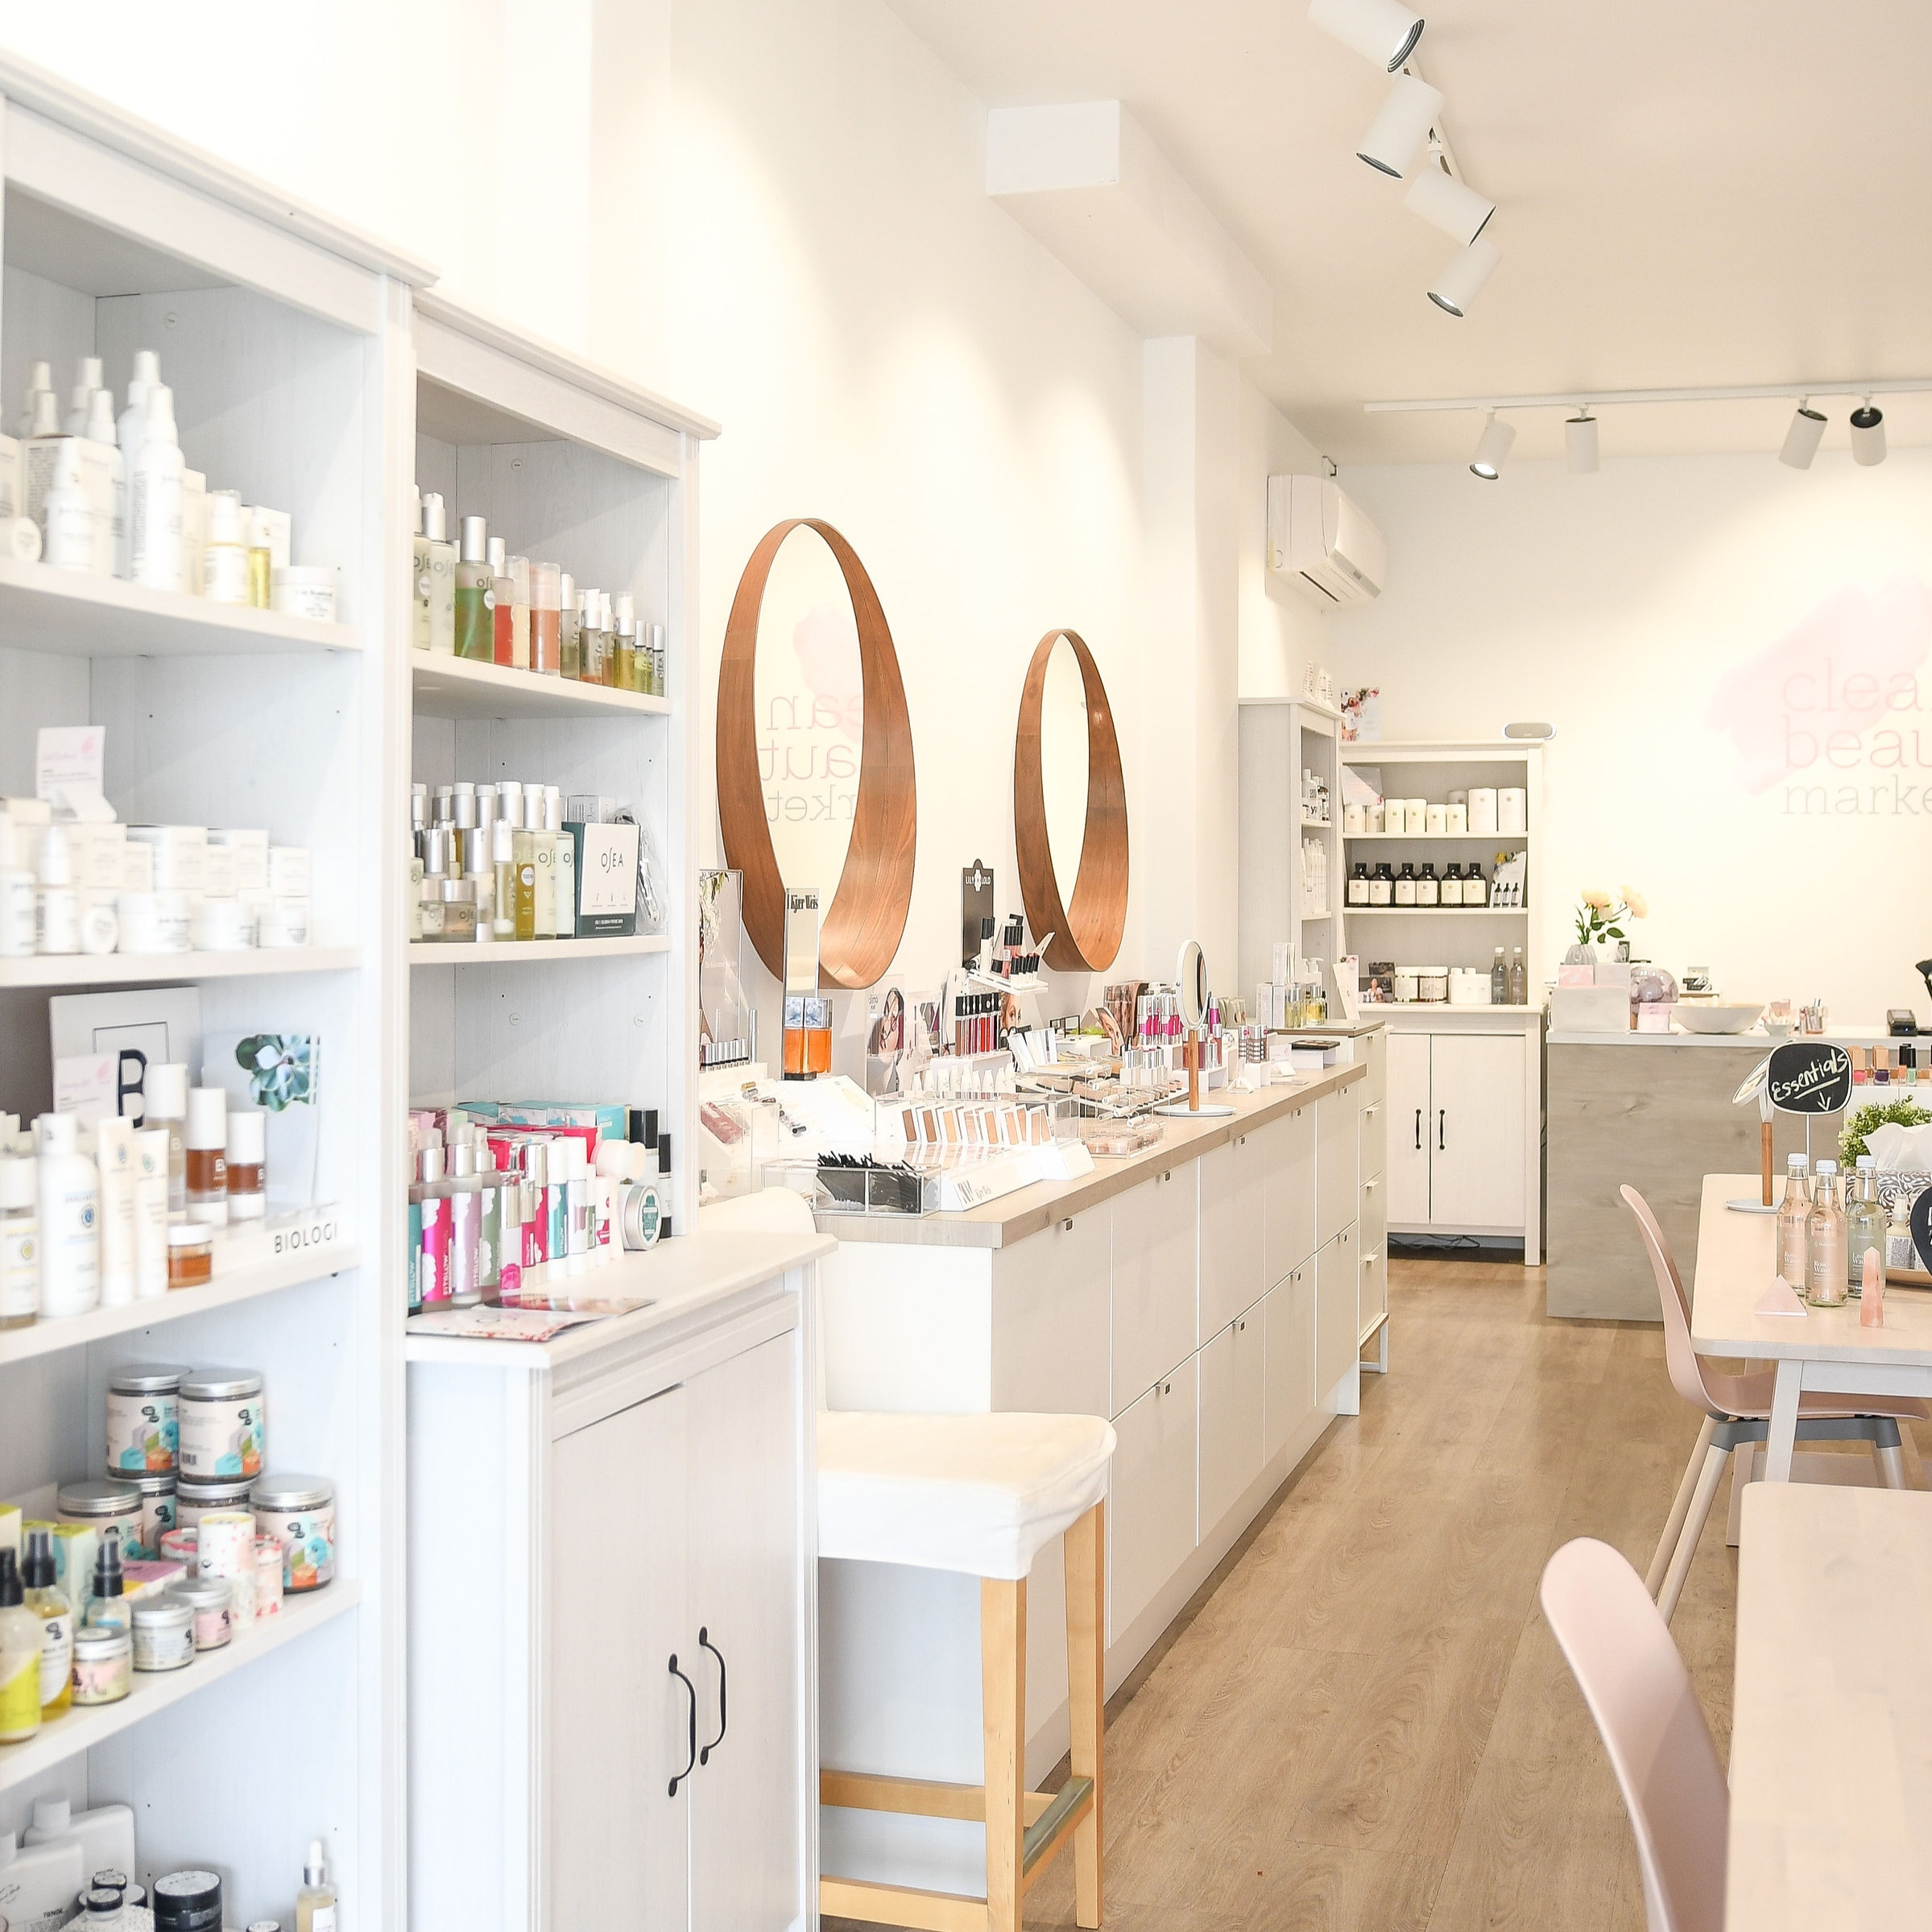 clean beauty market - 10% off your first order when you join the mailing list